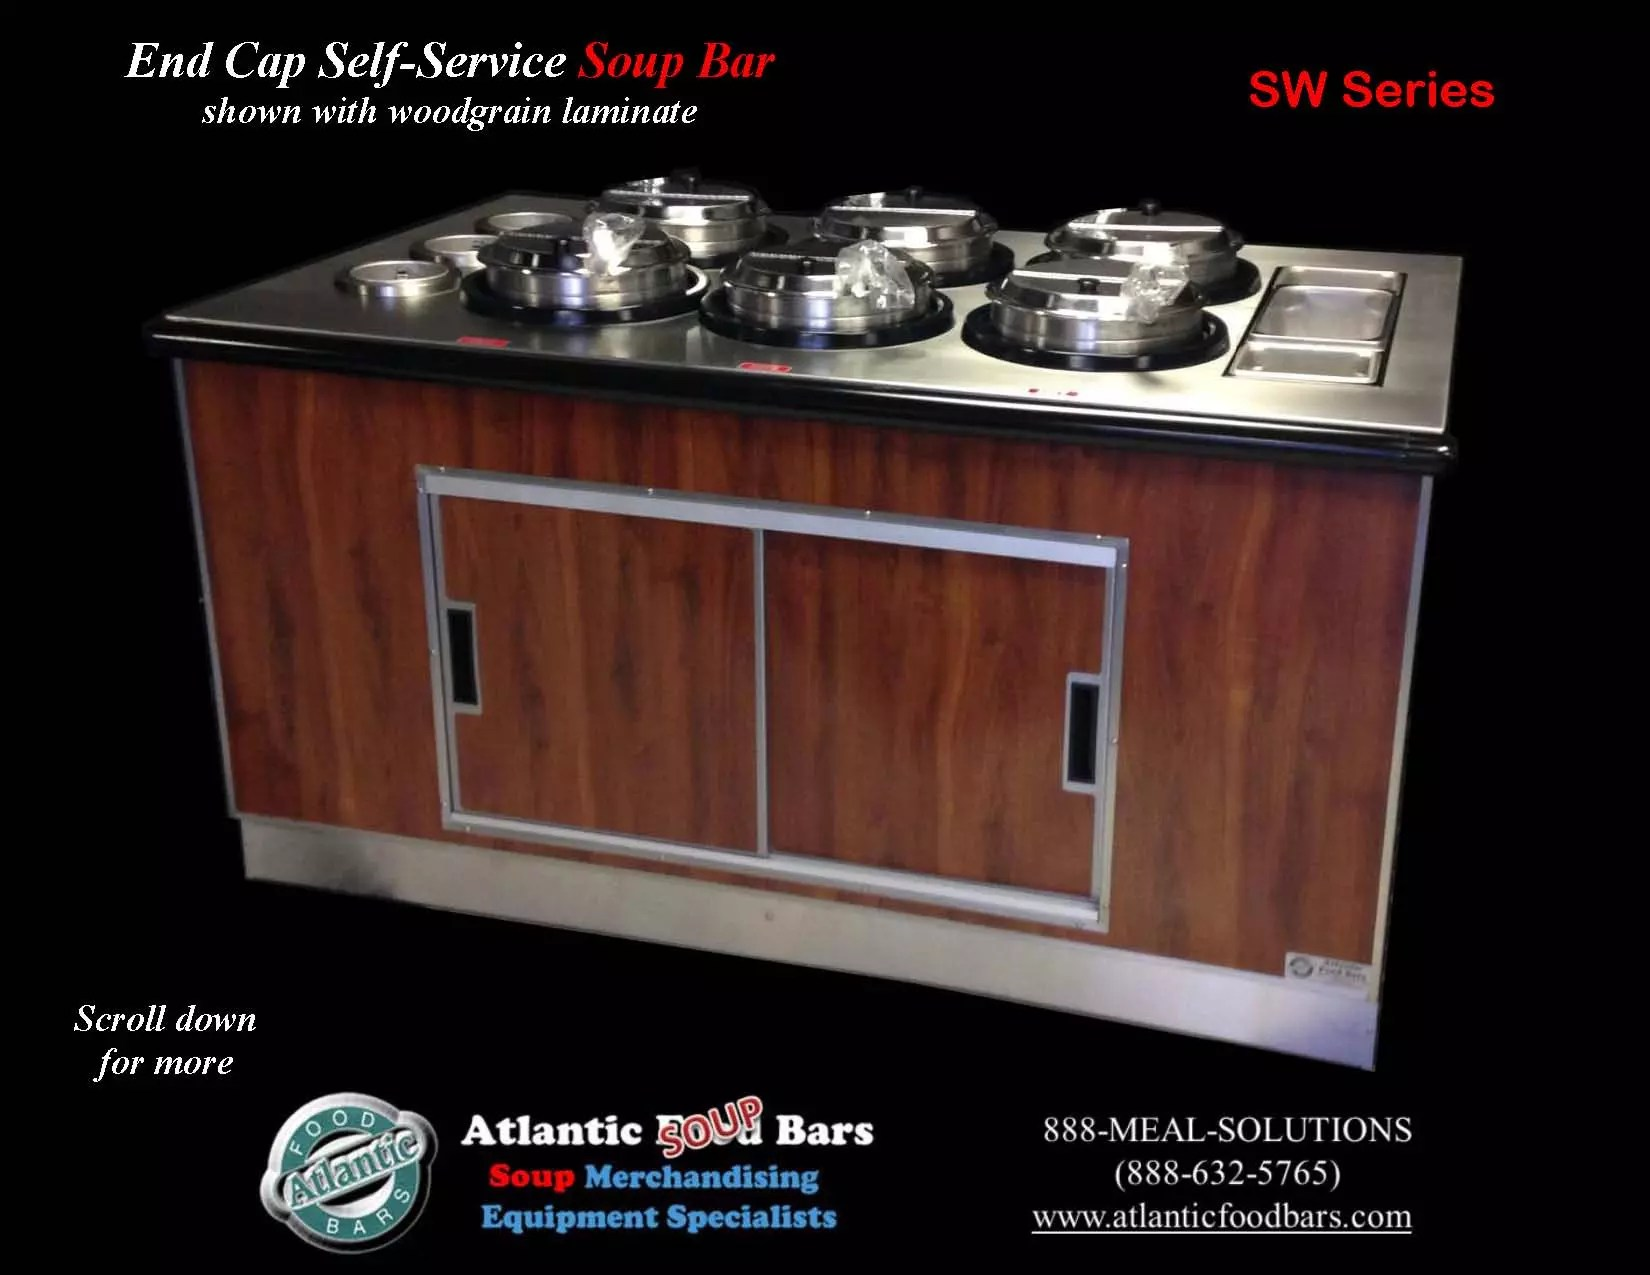 Atlantic food bars soup bar with induction warming wells for Food bar 2015